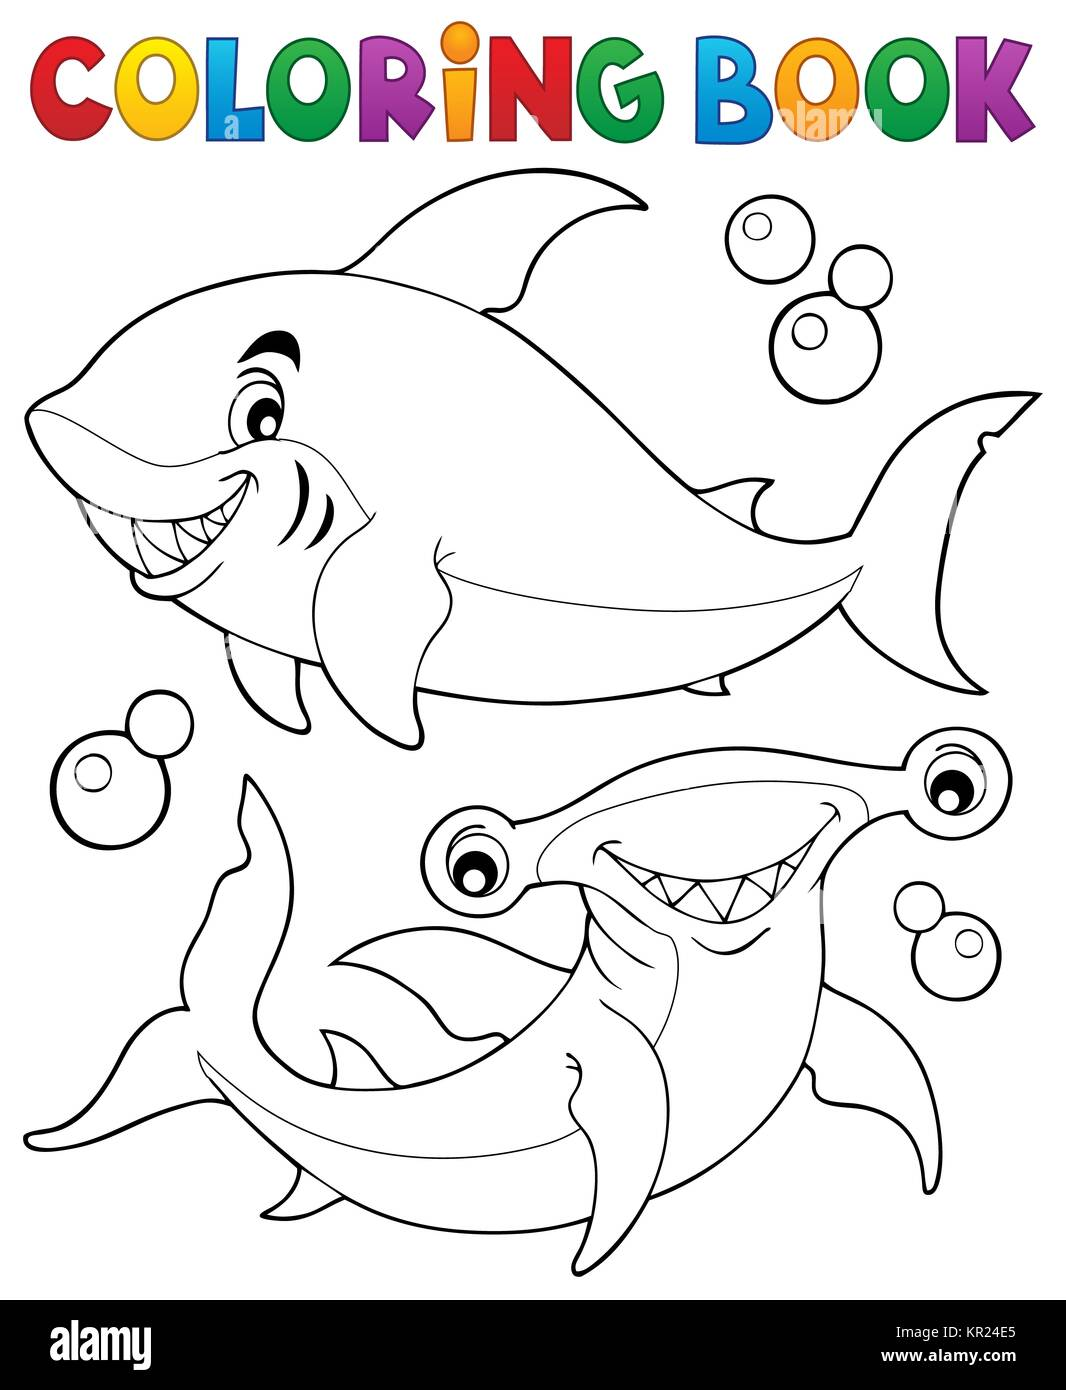 Big Fish Libro Illustration Big Fish Coloring Imágenes De Stock Illustration